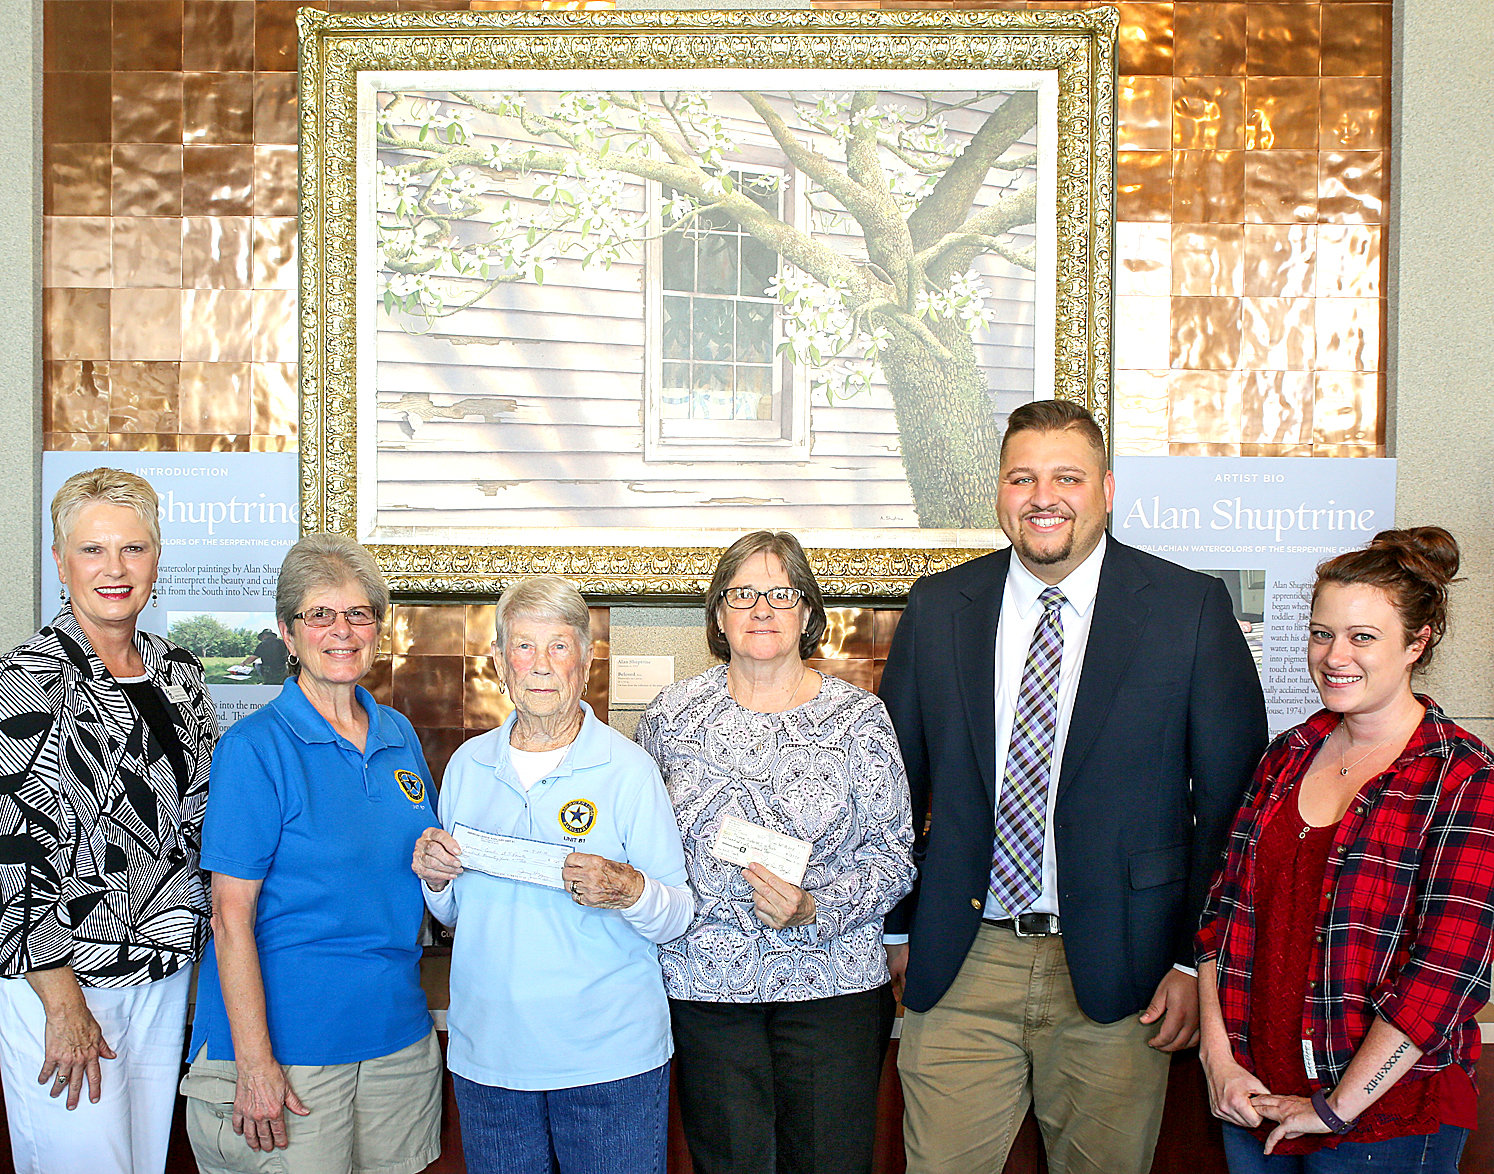 AMERICAN LEGION POST 81 and American Legion Auxiliary Unit 81 members present checks to the Museum Center representatives. The funds will go toward a World War II trunk that will travel around to area schools to educate students about the war and its effects.  From left are Museum Center Executive DirectorJanice Neyman; American Legion Auxillary Unit 81 members Janet Allen and Juanita Cooper; American Legion Post 81 member Mary Baier; curator of education at the Museum Center, Mitch Mizell; and Hope Vollm, AmeriCorps VISTA.